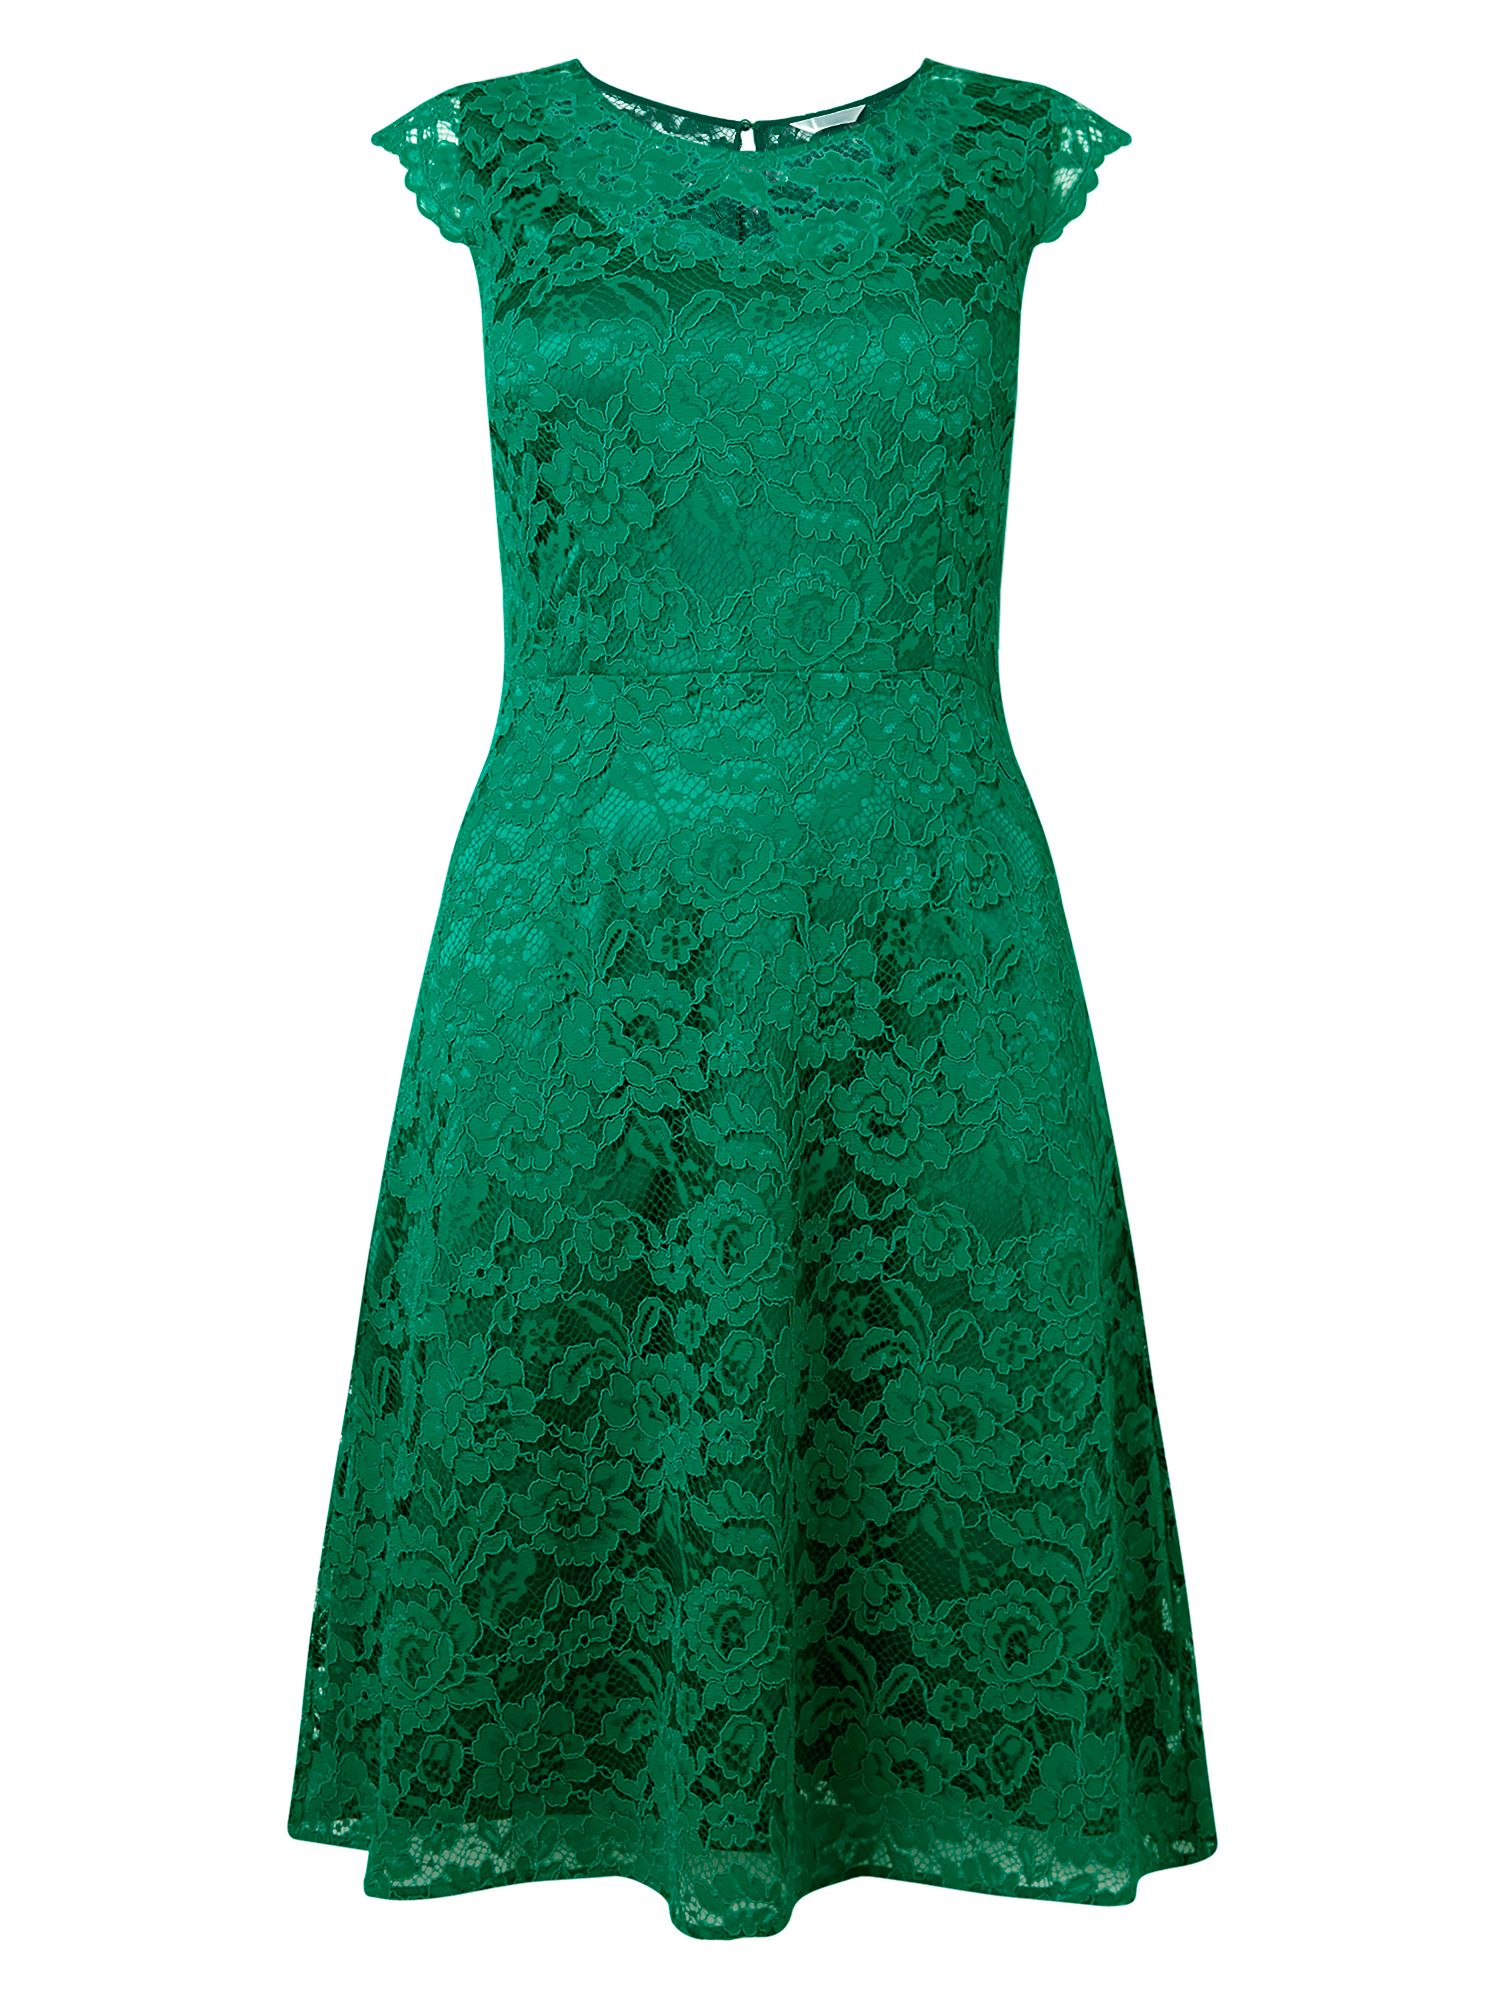 Studio 8 Allegra Dress, Green